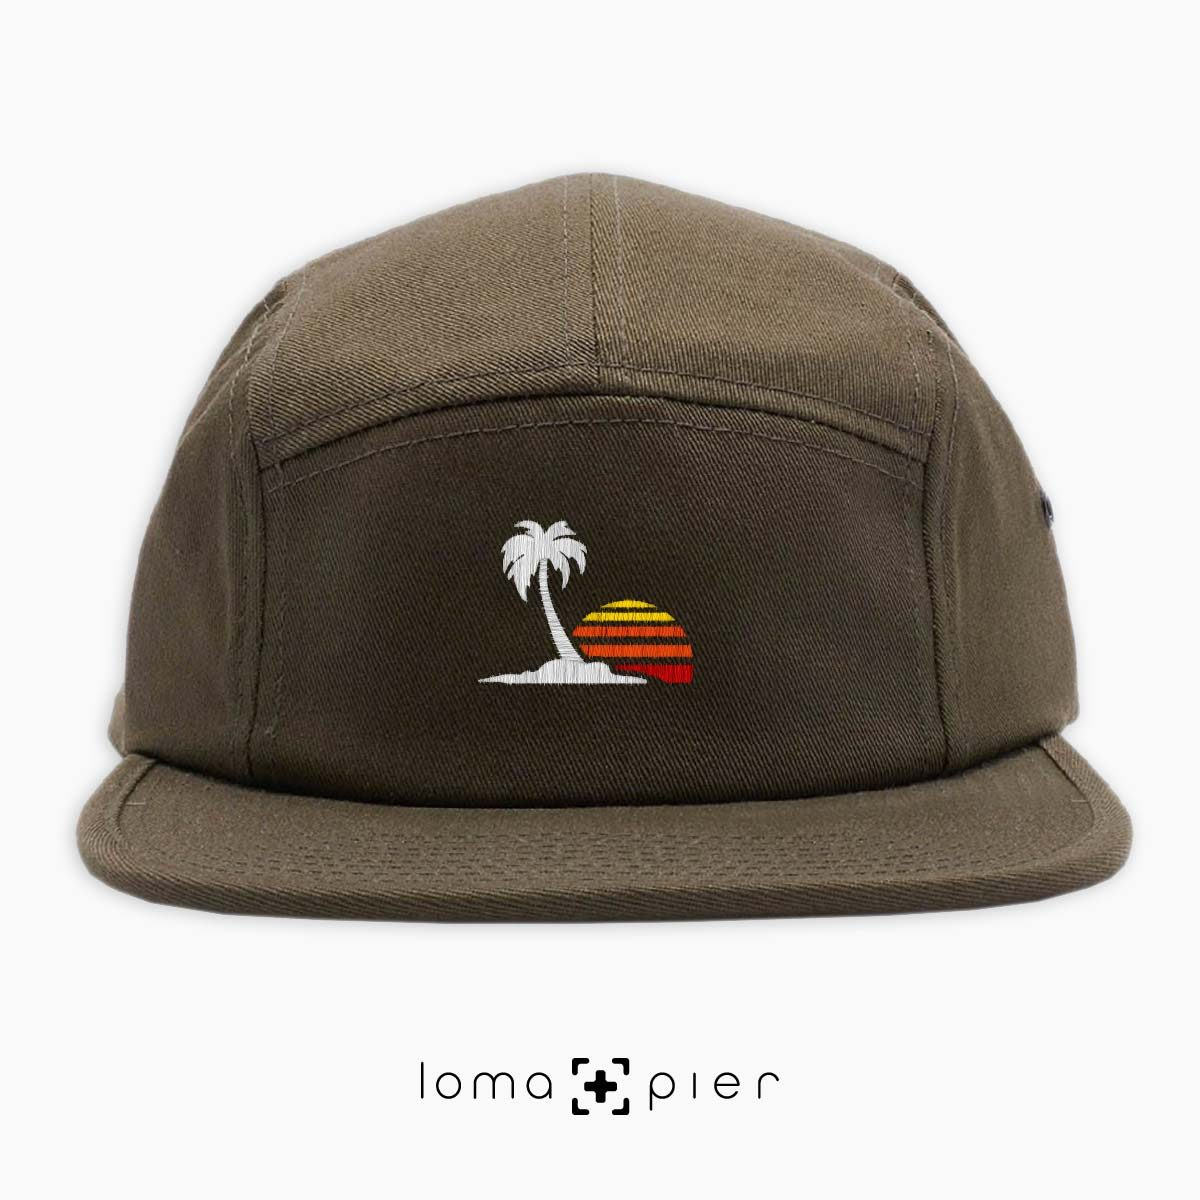 VENICE VIBES icon embroidered on an olive green cotton 5-panel hat with multicolor thread by loma+pier hat store